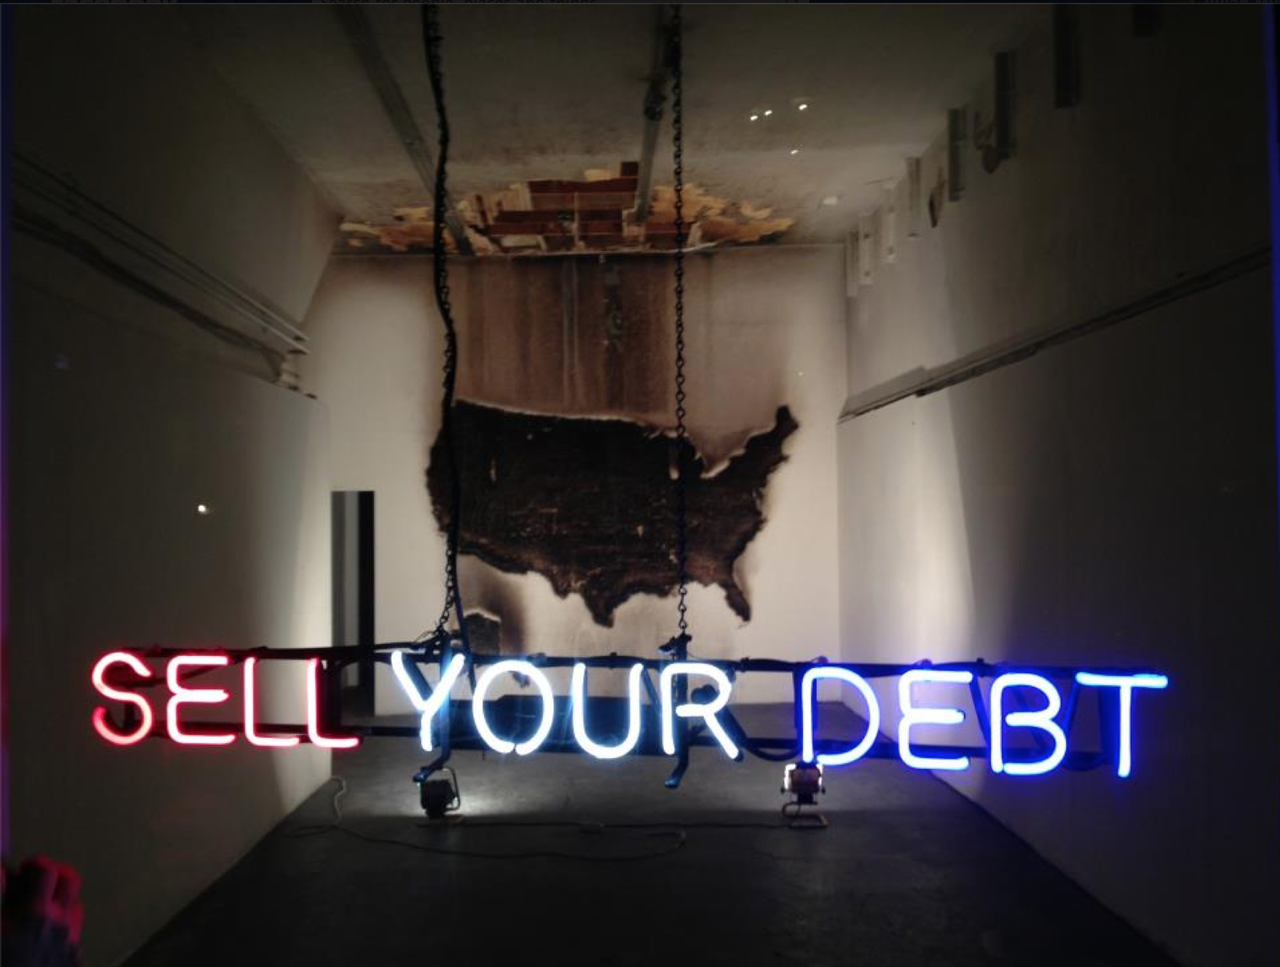 grupaok: Claire Fontaine, Sell Your Debt, Queens Nails Projects, San Francisco, 2013 [via Joshua Kit Clayton] SELL YOUR DEBT. MAKE NEON.